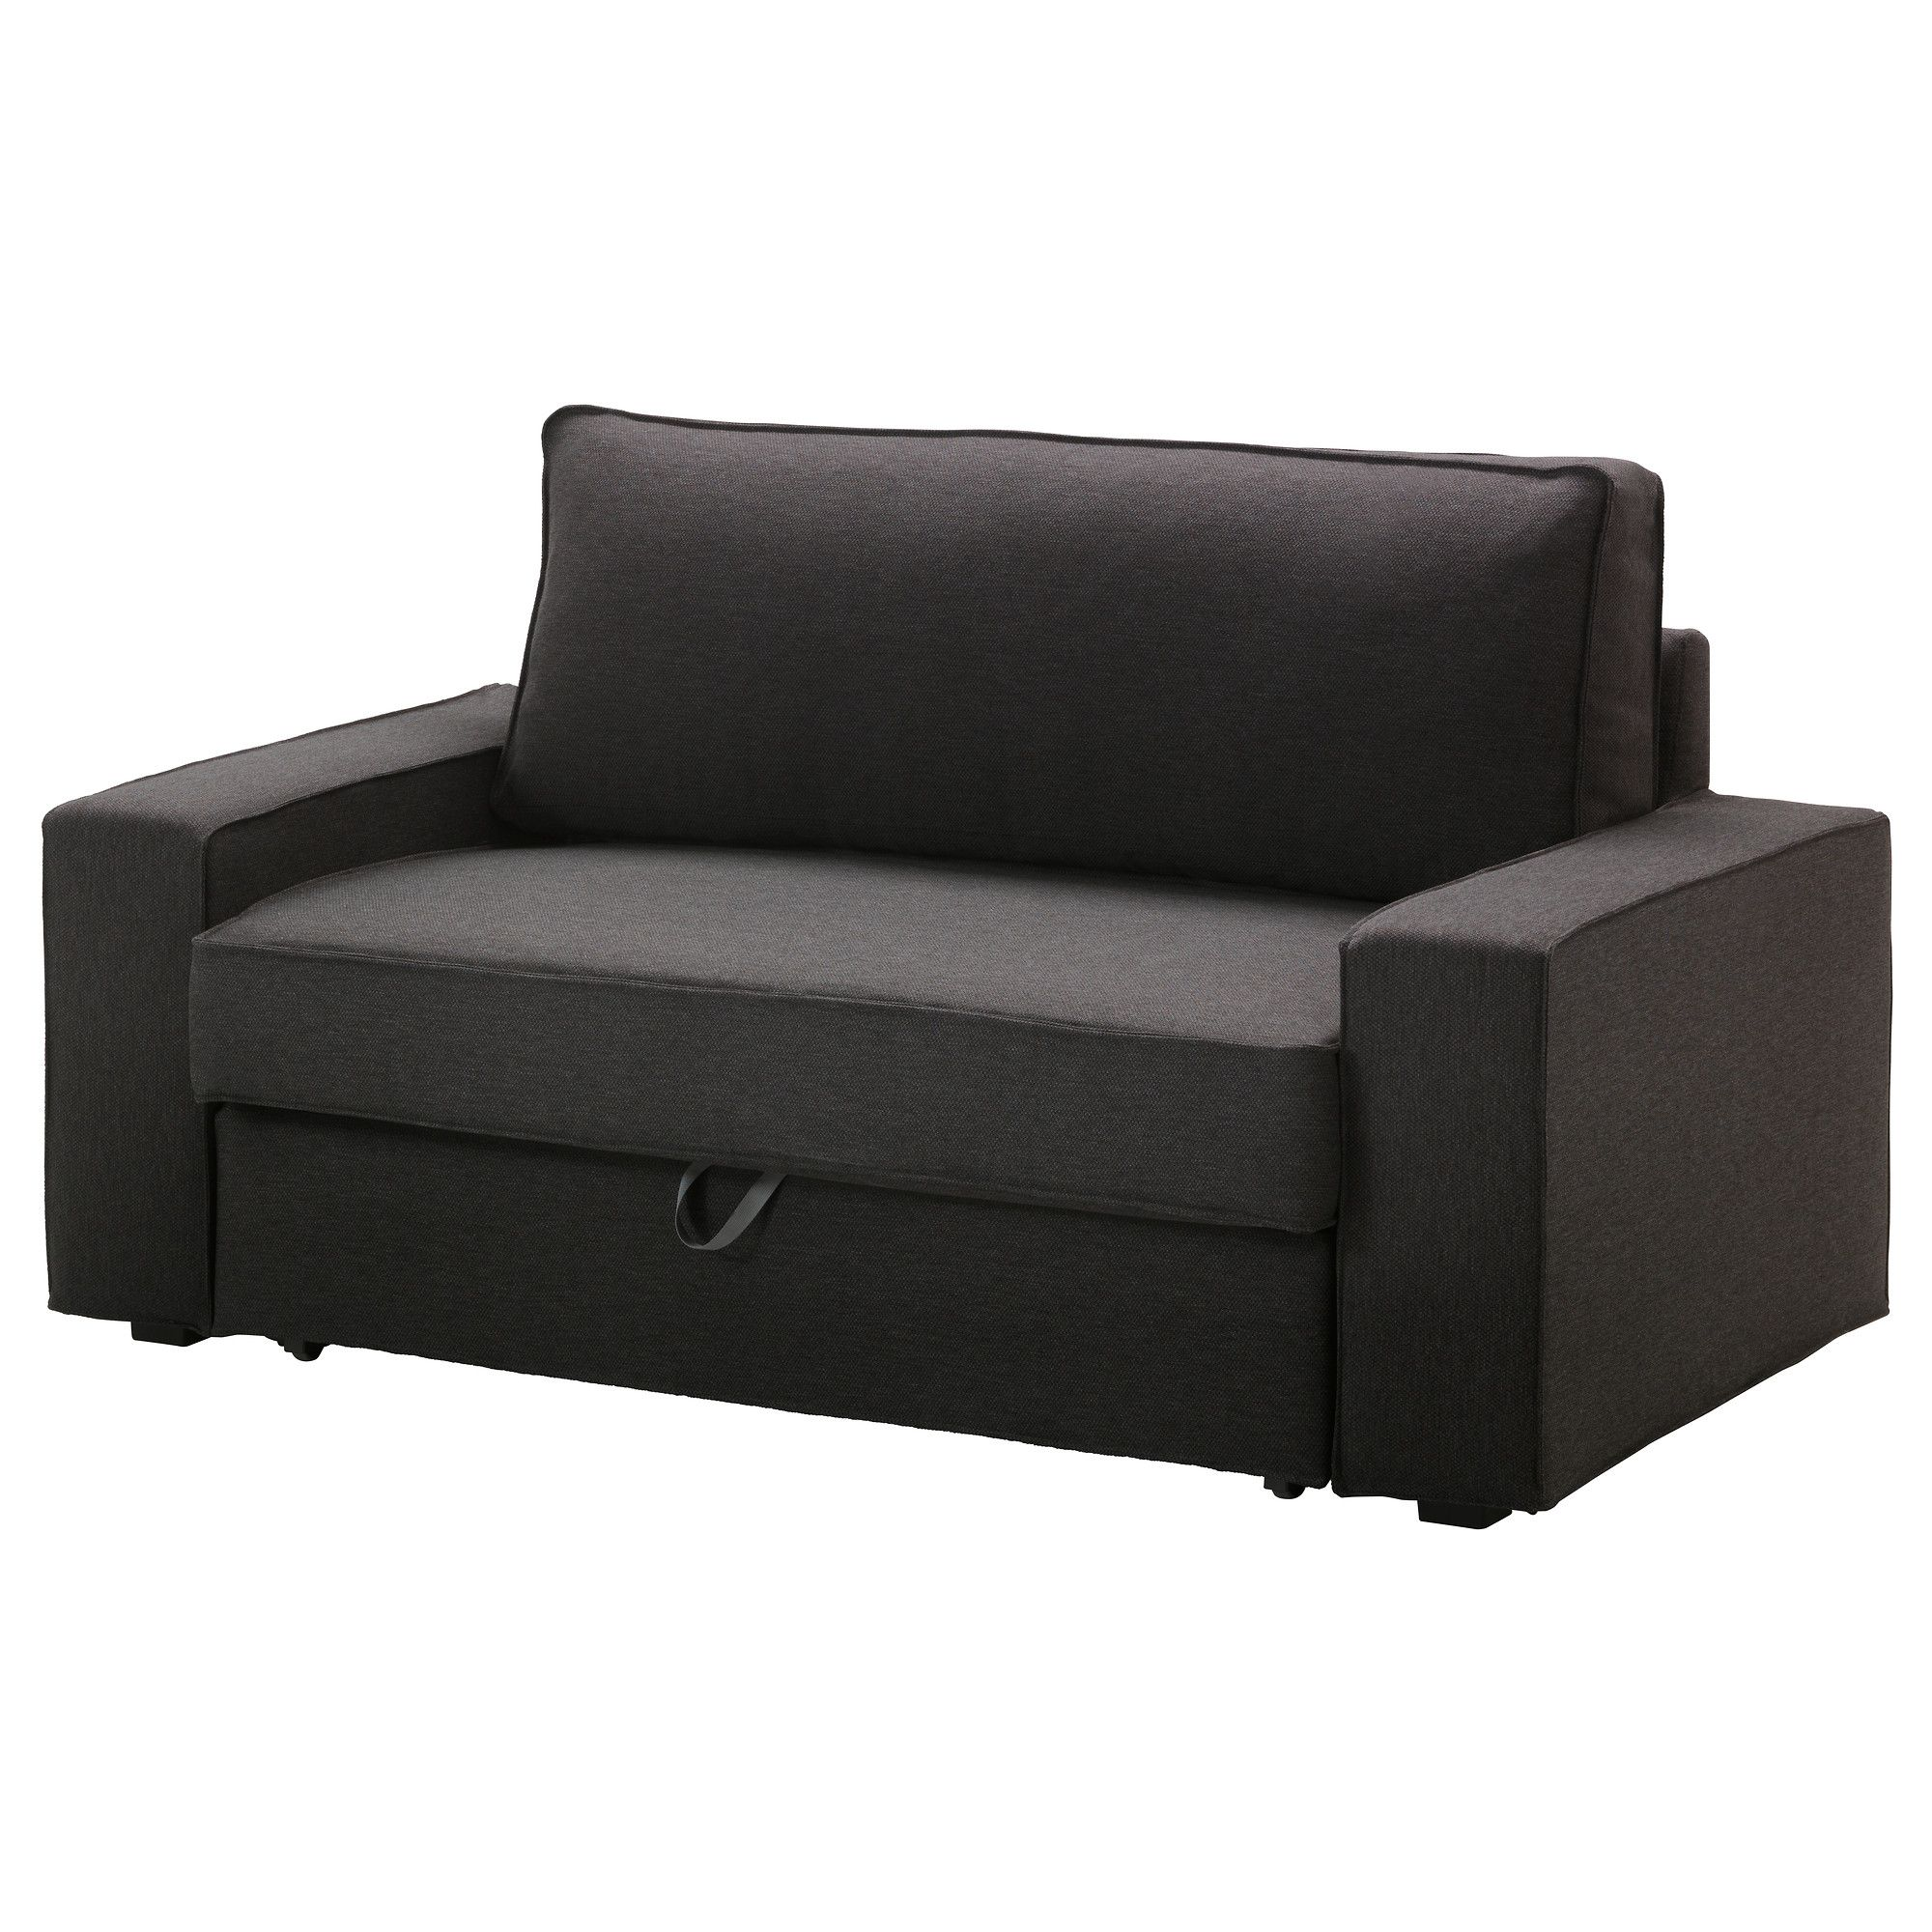 Housses Fauteuils Et Canapes Vilasund Two Seat Sofa Bed Cover Dansbo Dark Grey Ikea